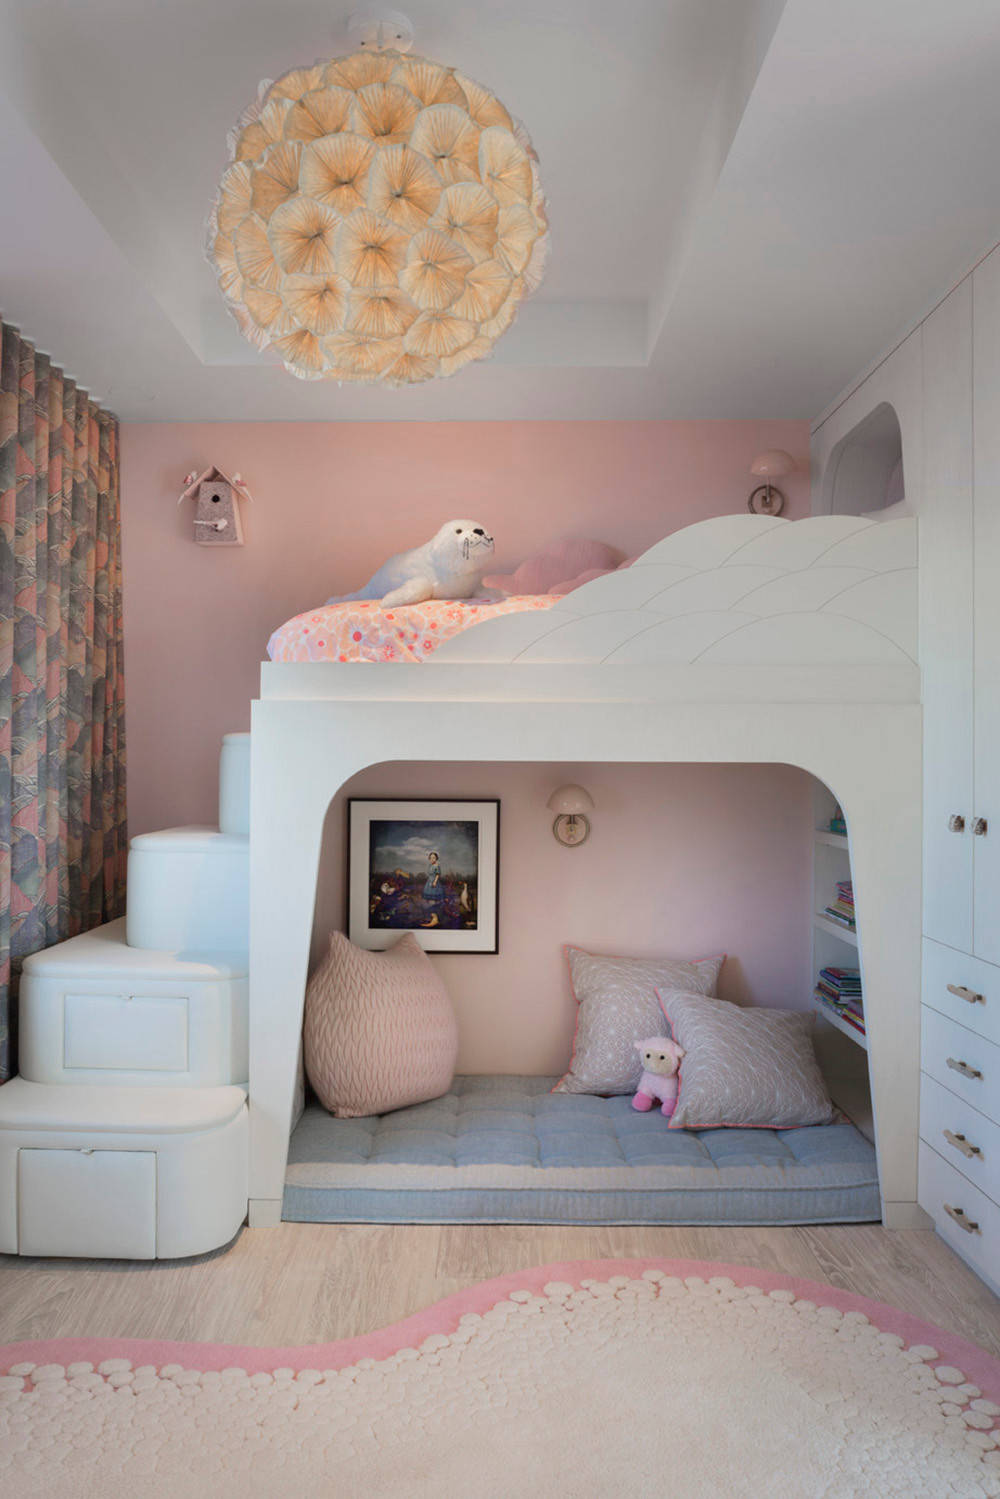 75 Beautiful Mid Century Modern Kids Room Pictures Ideas November 2020 Houzz